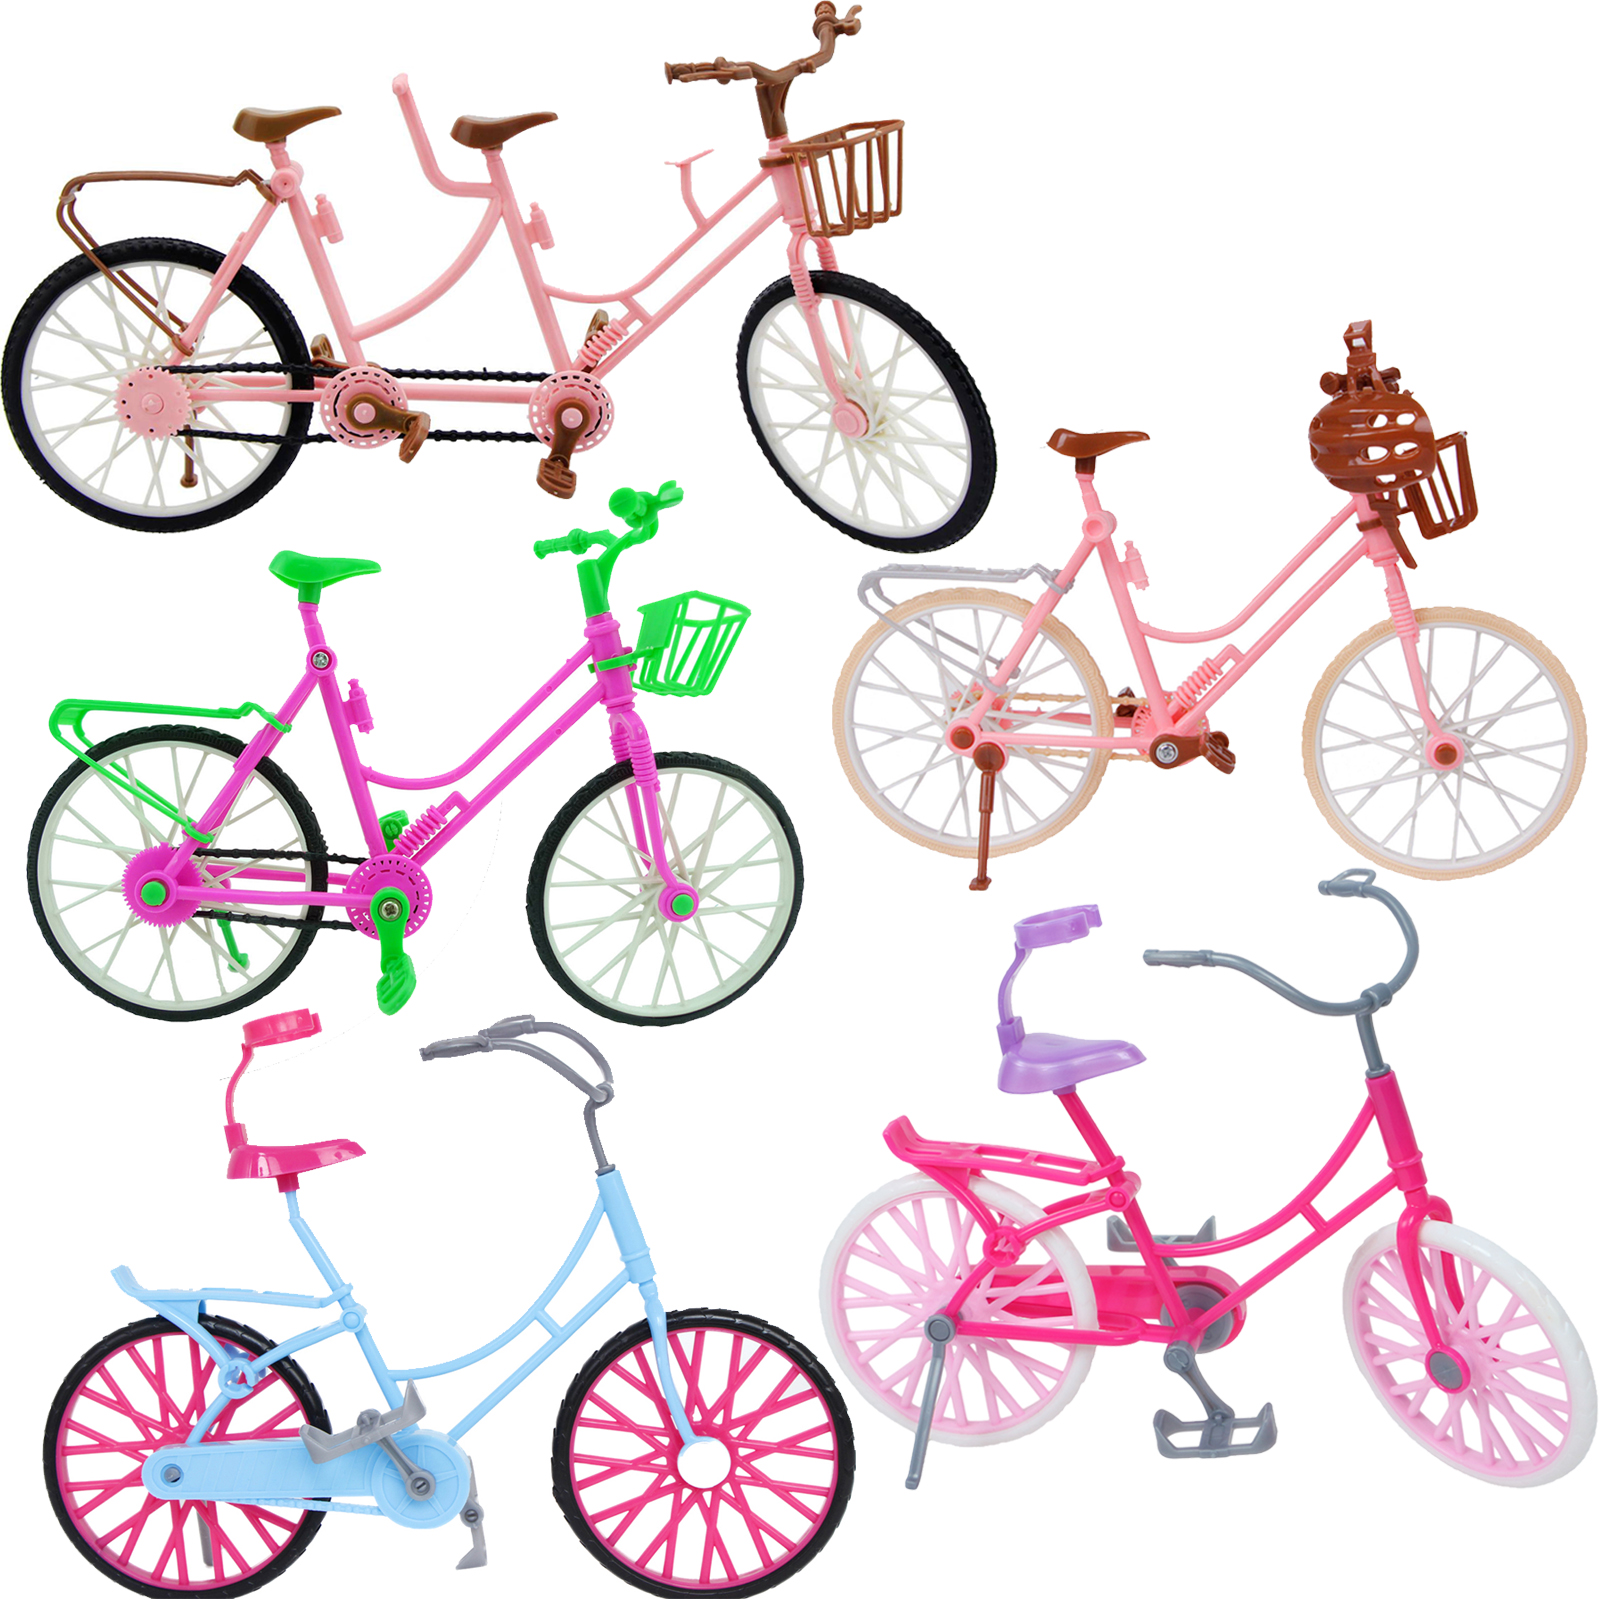 1 Set Detachable Bicycle Bike Mini Toy Outdoor Sports Doll Accessories For Barbie 12 In. Dollhouse Ken Kelly Girl Set Lot Style